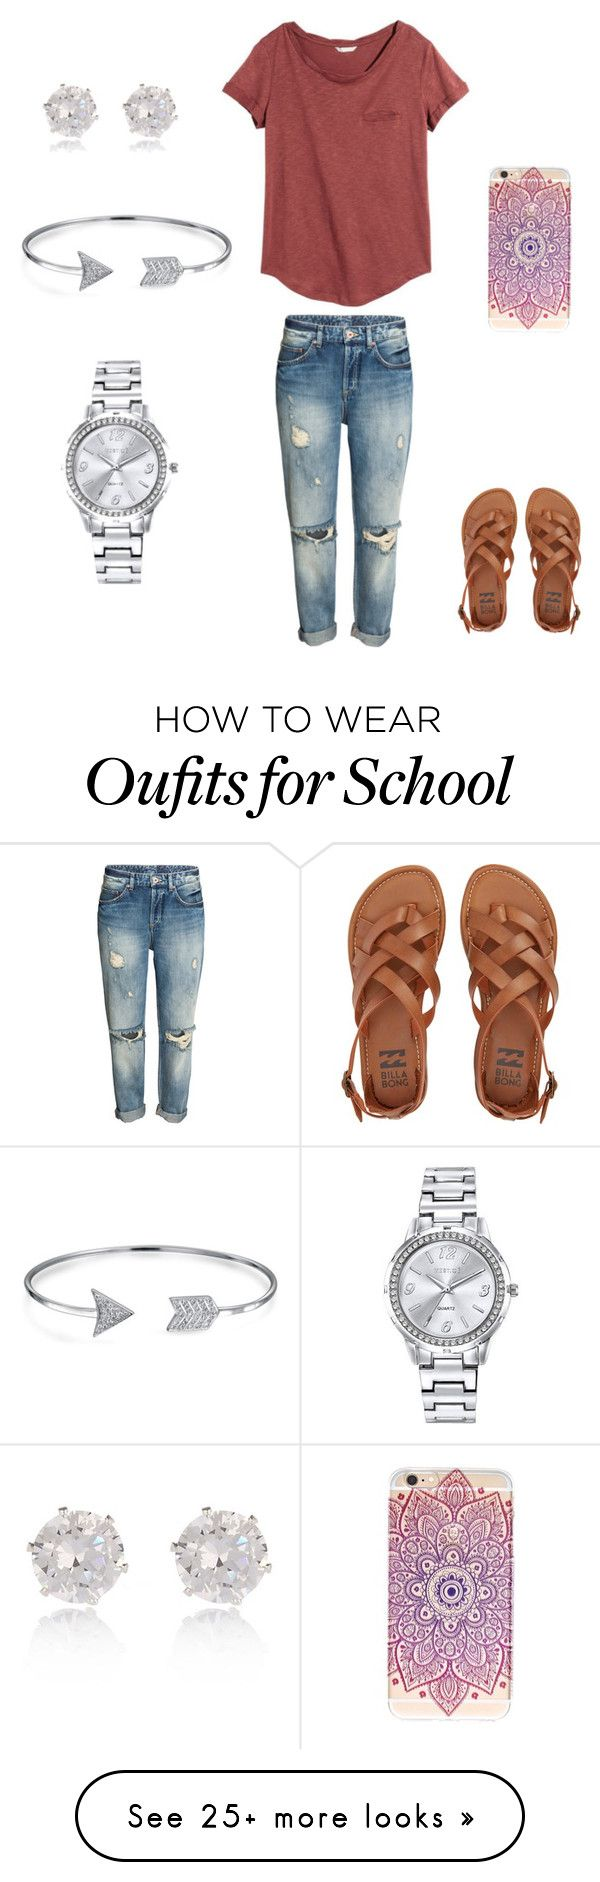 """""""Back to School Outfit"""" by hannahcoalson-1 on Polyvore featuring H&M, Billabong, Bling Jewelry, Mestige and River Island"""